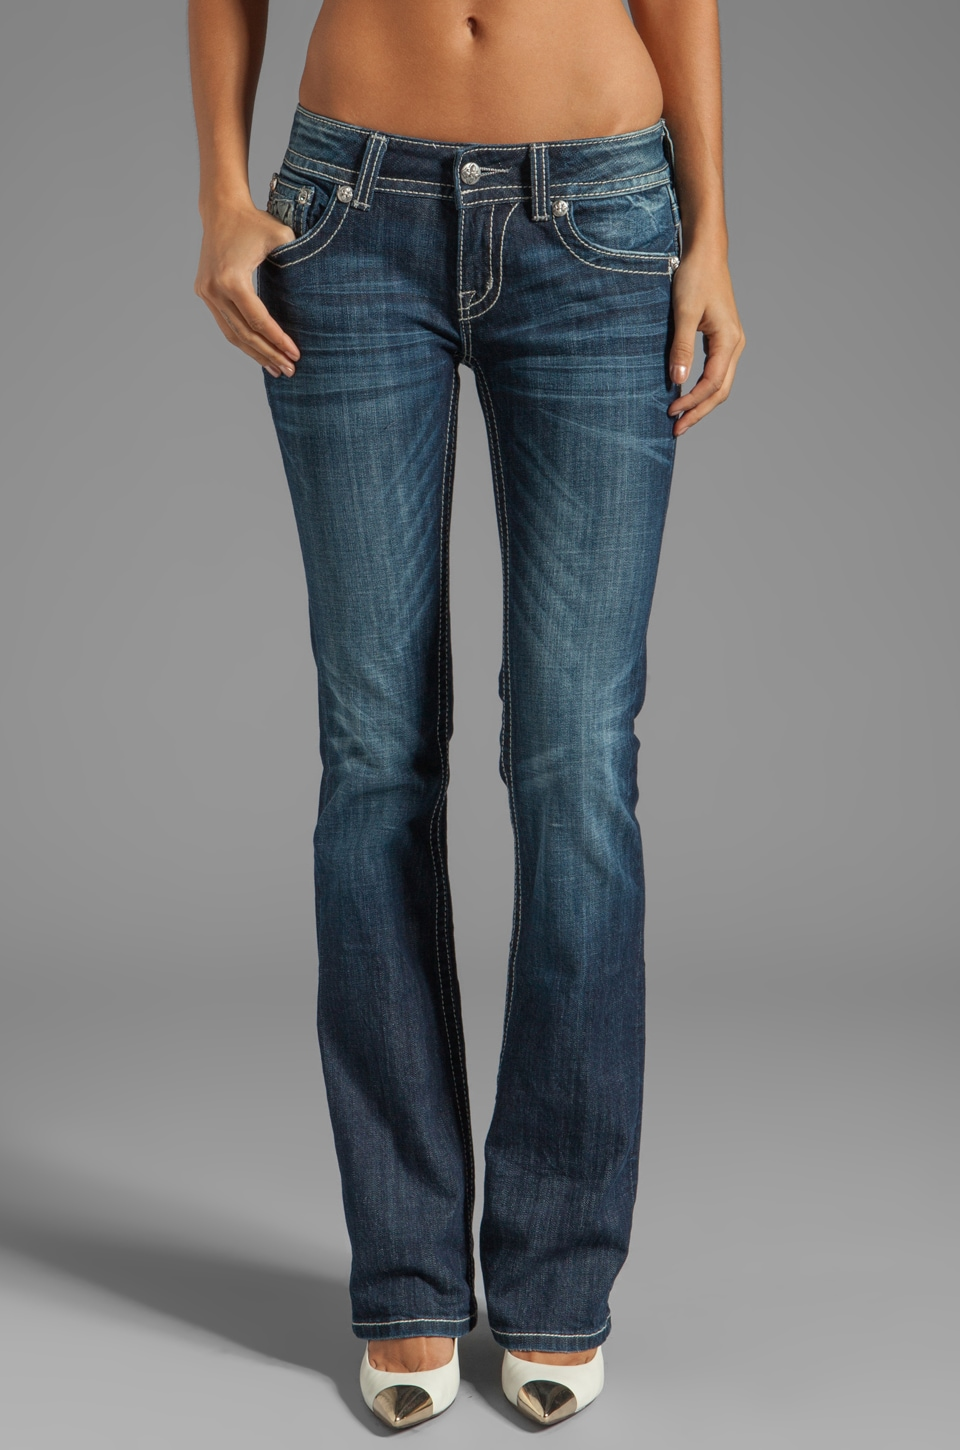 Miss Me Jeans Bootcut in MK 222